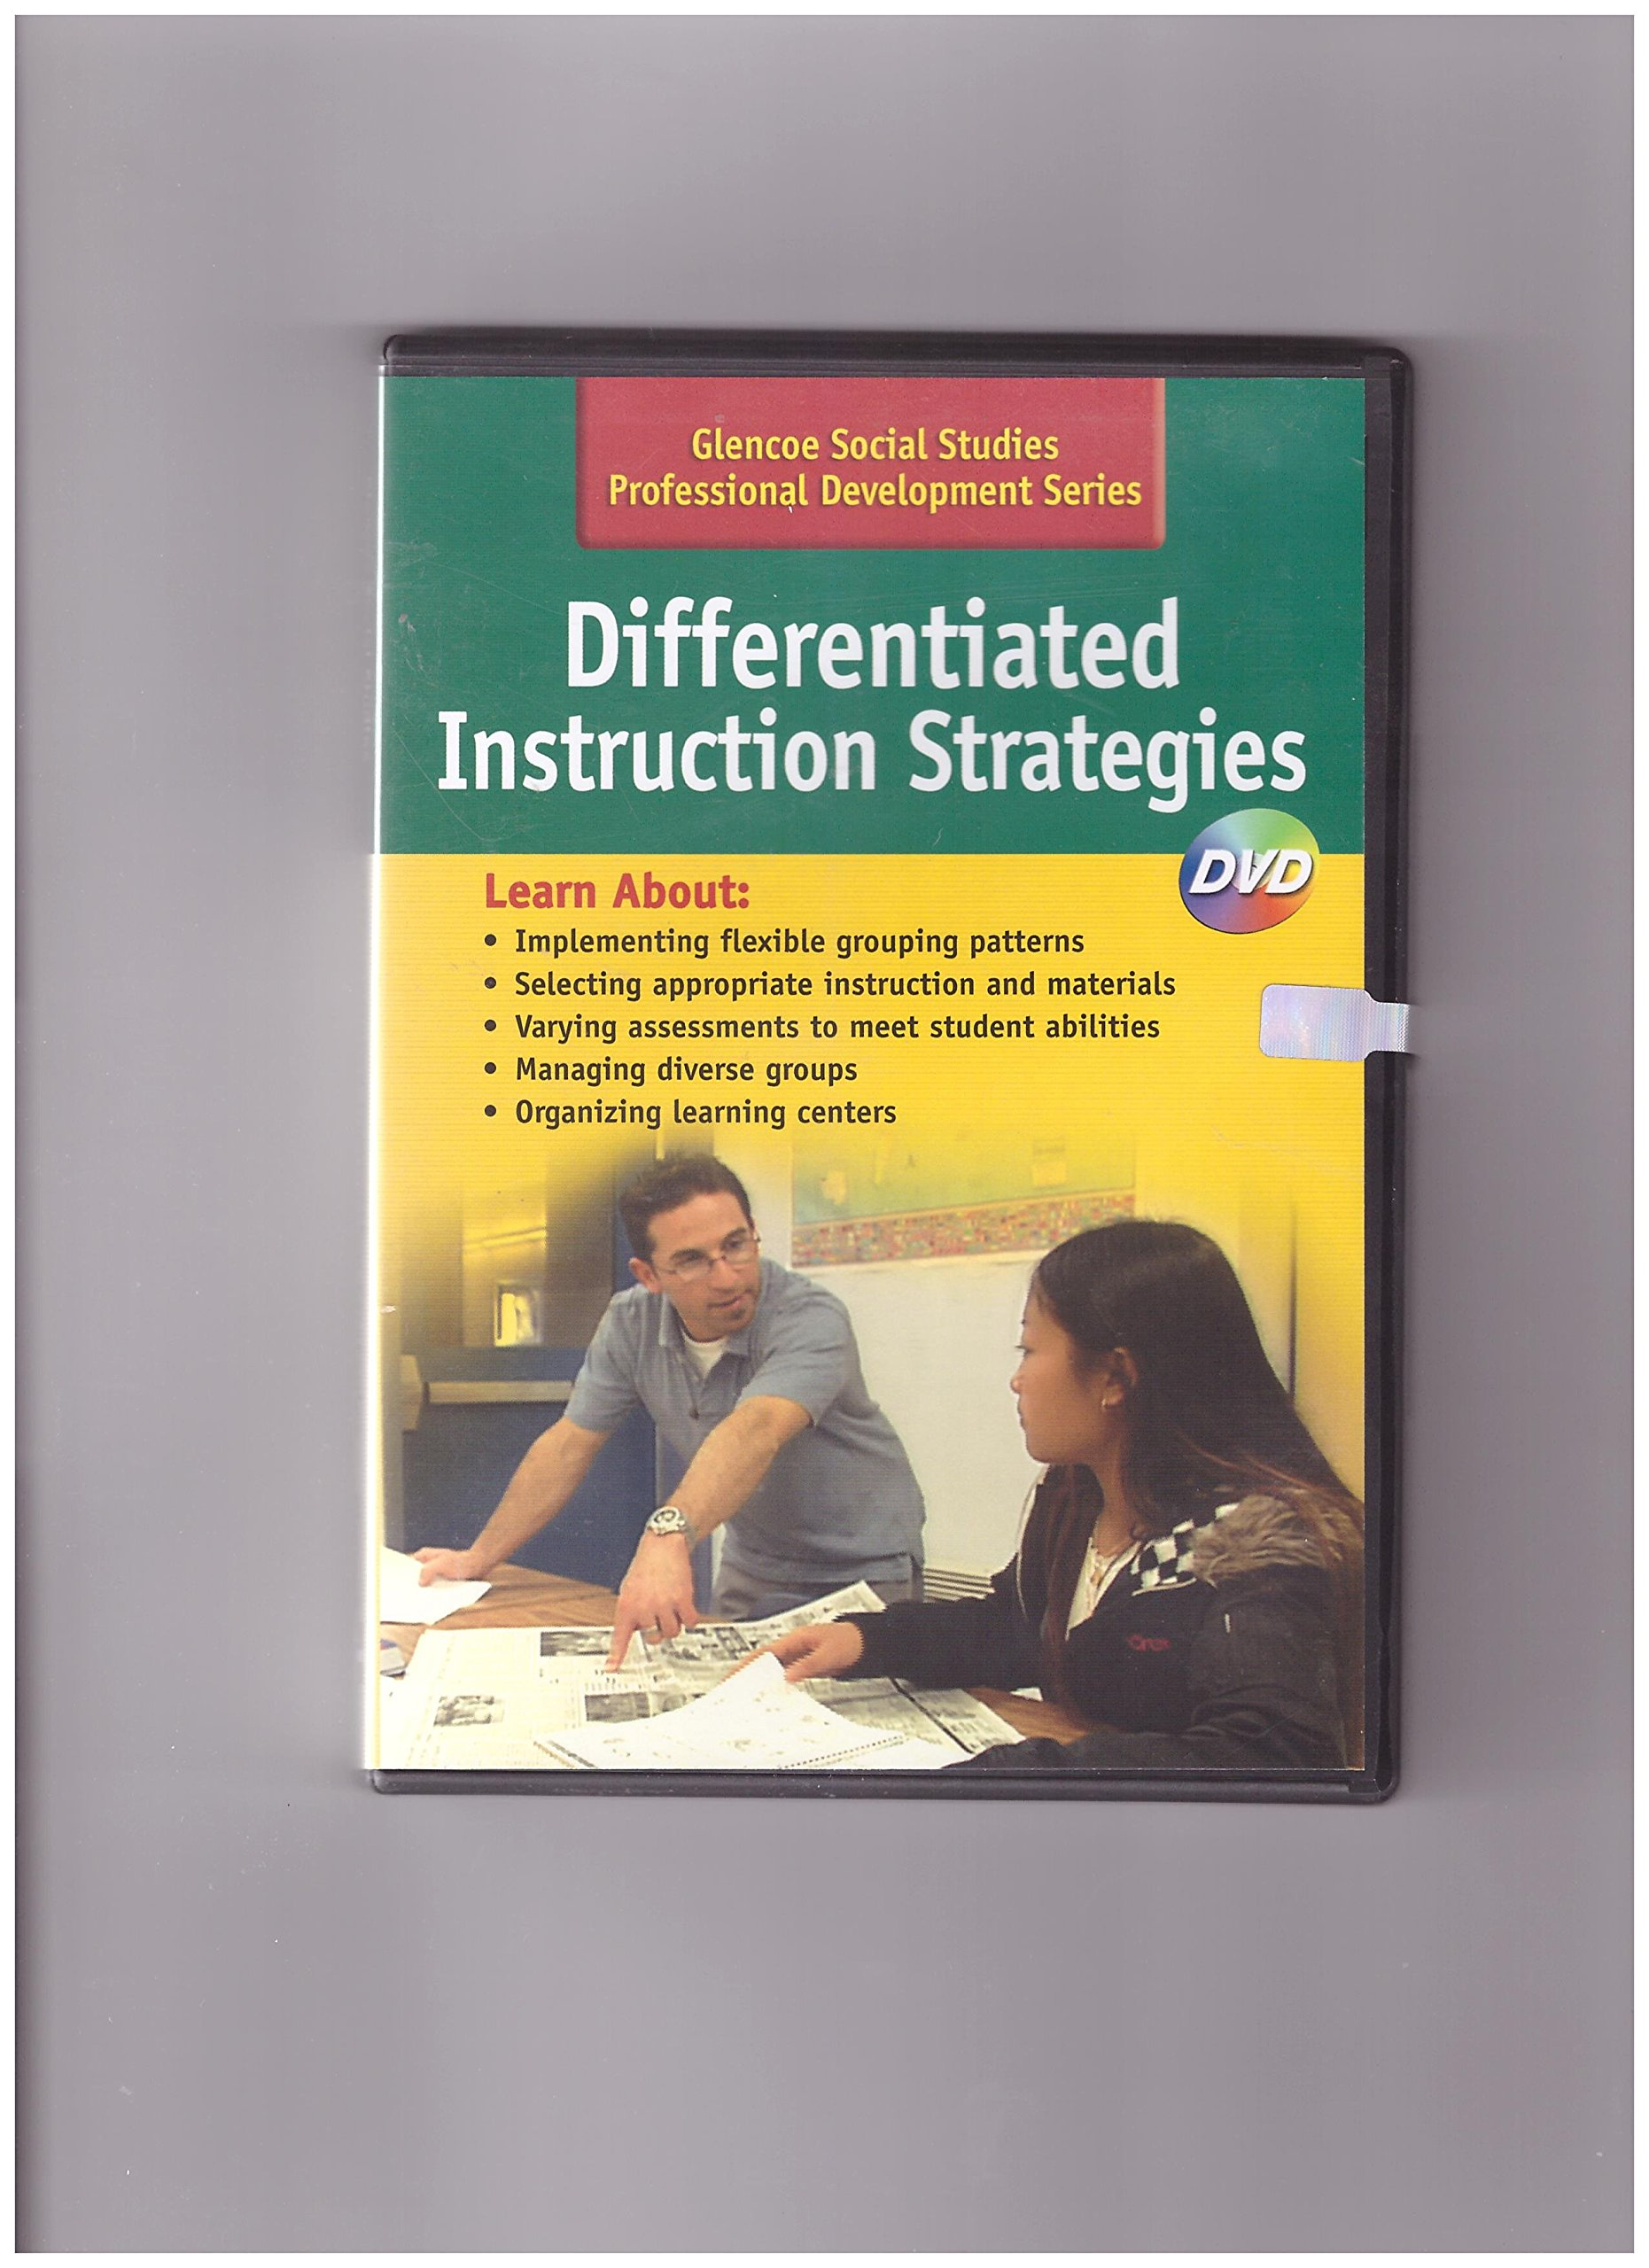 Differentiated Instruction Strategies Dvd Glencoe Social Studies